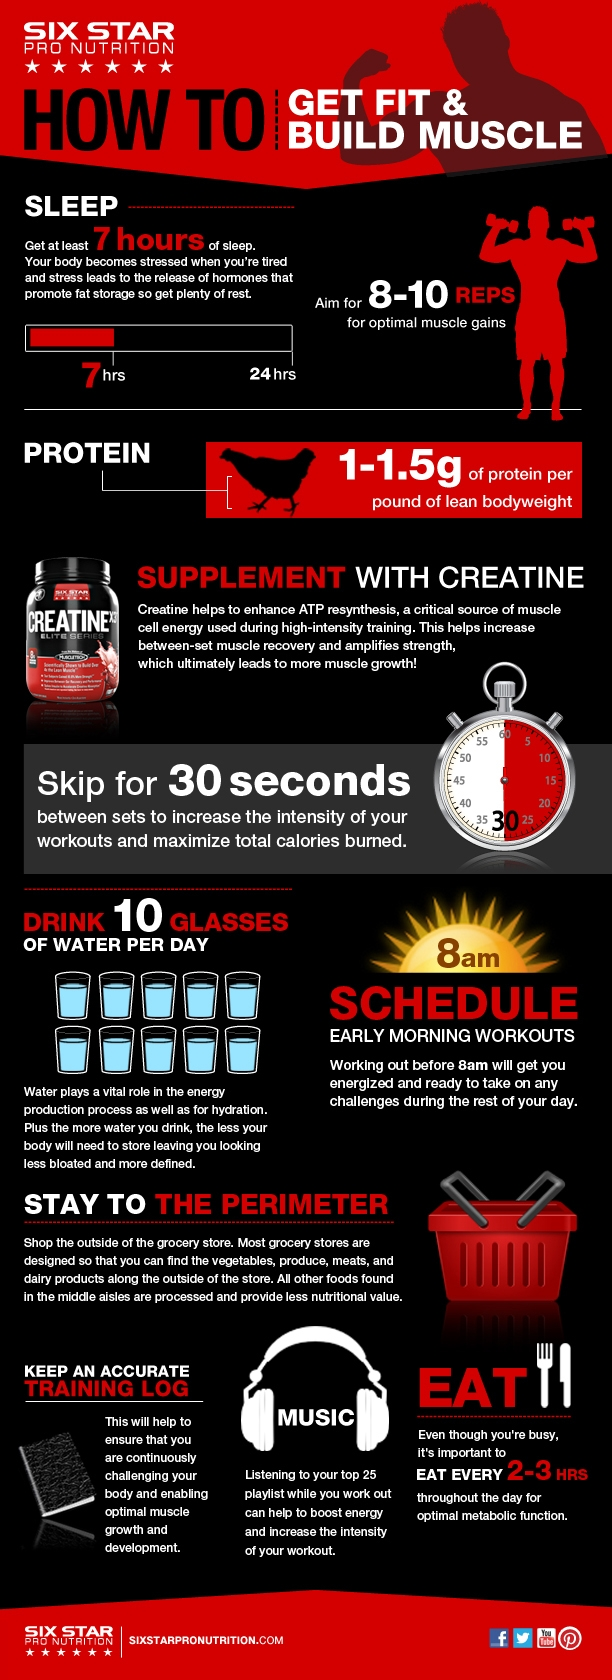 Critical Points To Remember When Trying To Bulk Up